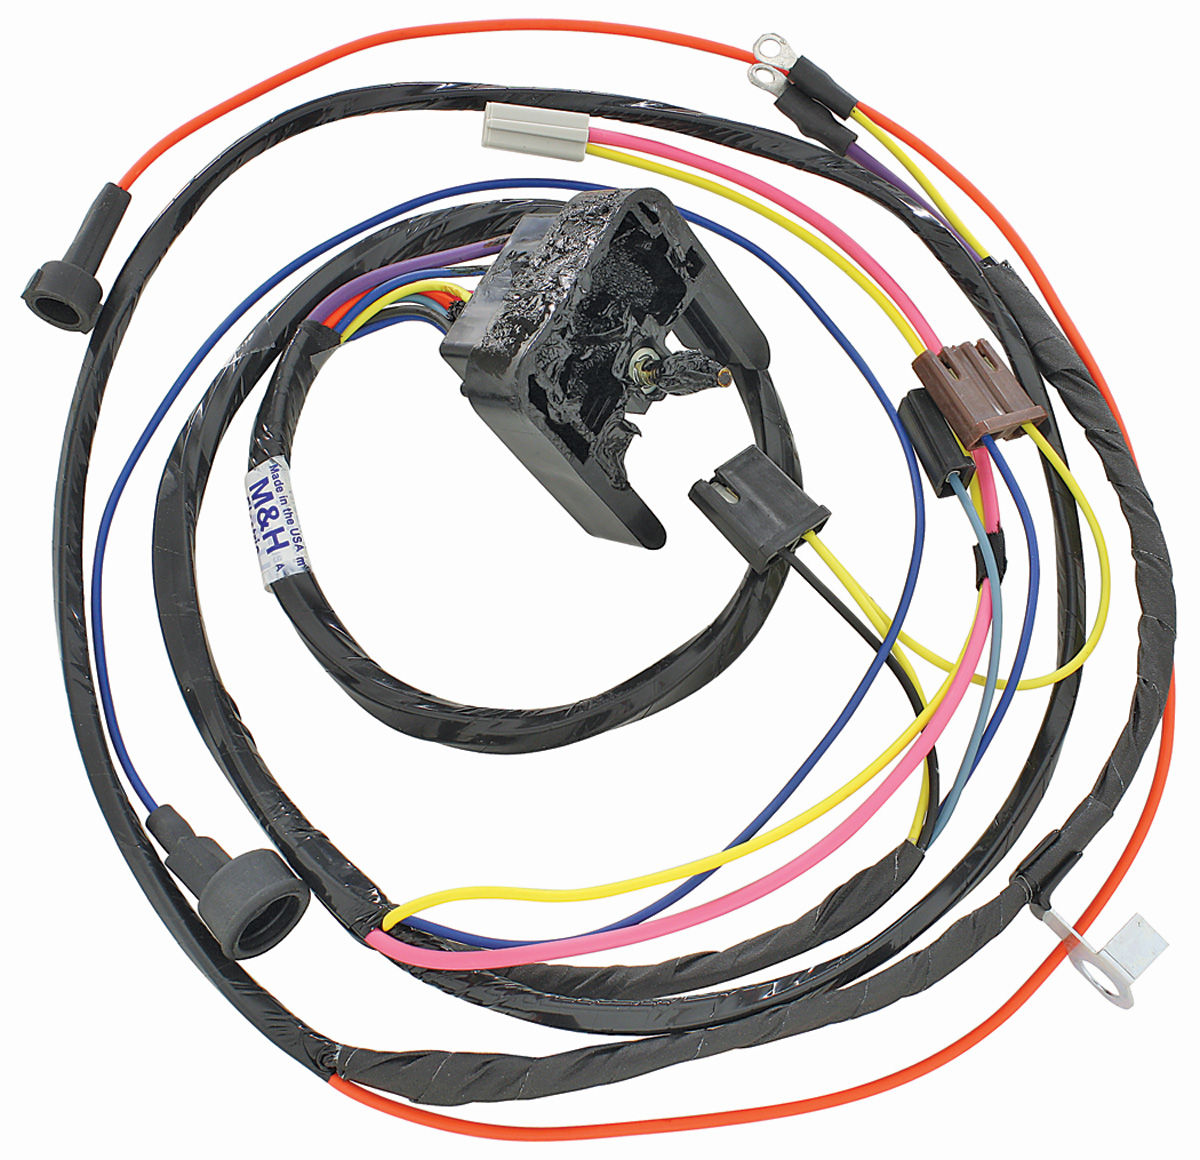 m&h 1968-69 chevelle engine harness 396 hei w/warning lights, Wiring diagram